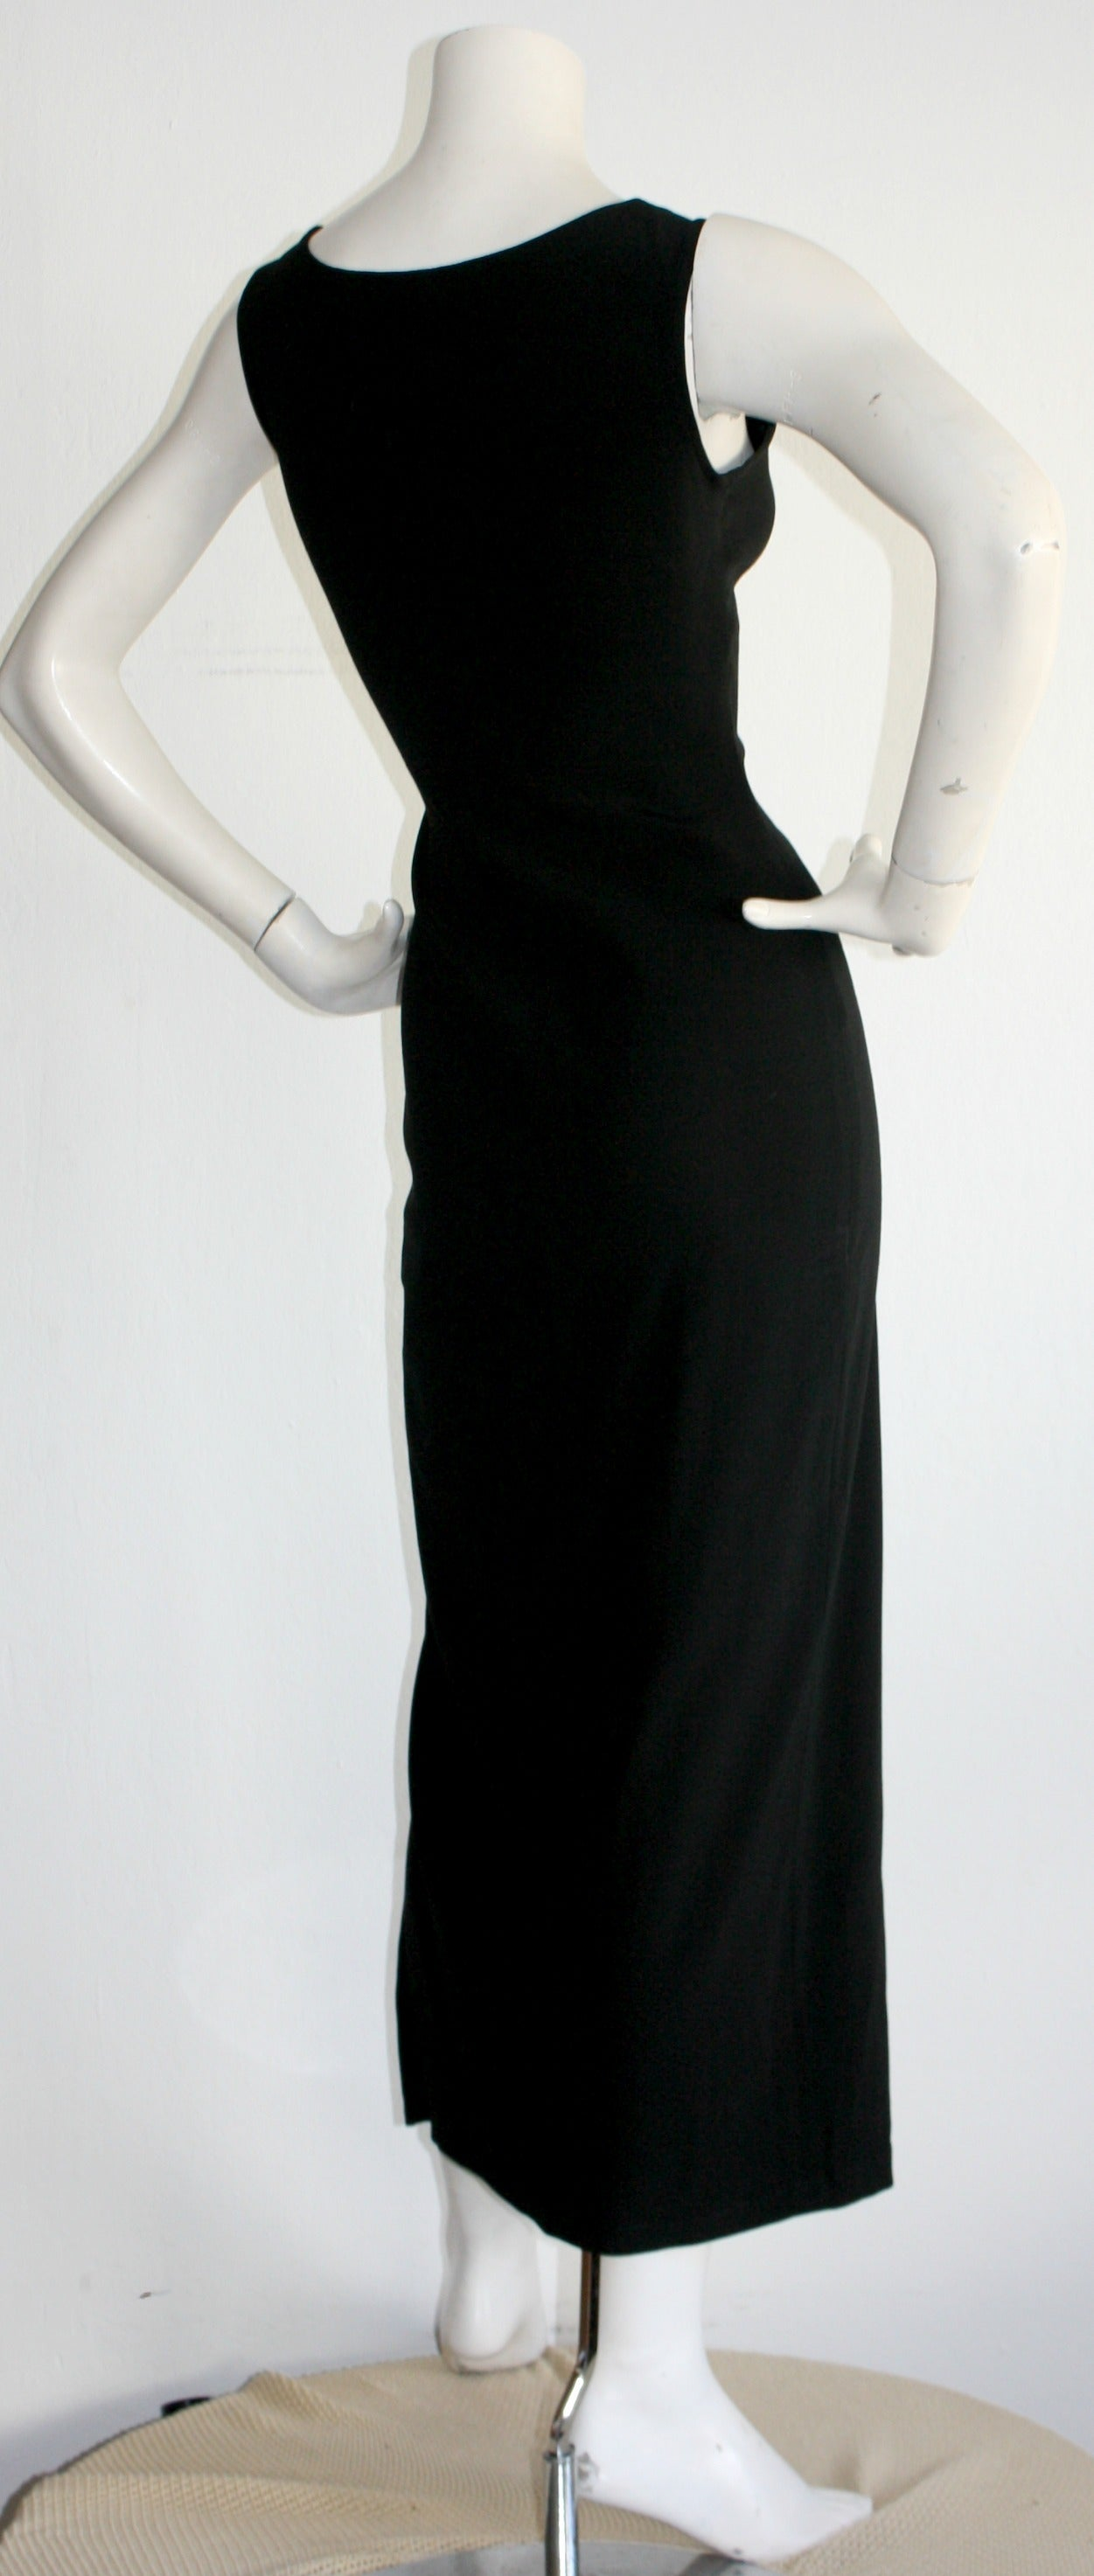 Sexy 1990s Vintage Jean Paul Gaultier Black dress w/ High Slit For Sale 1